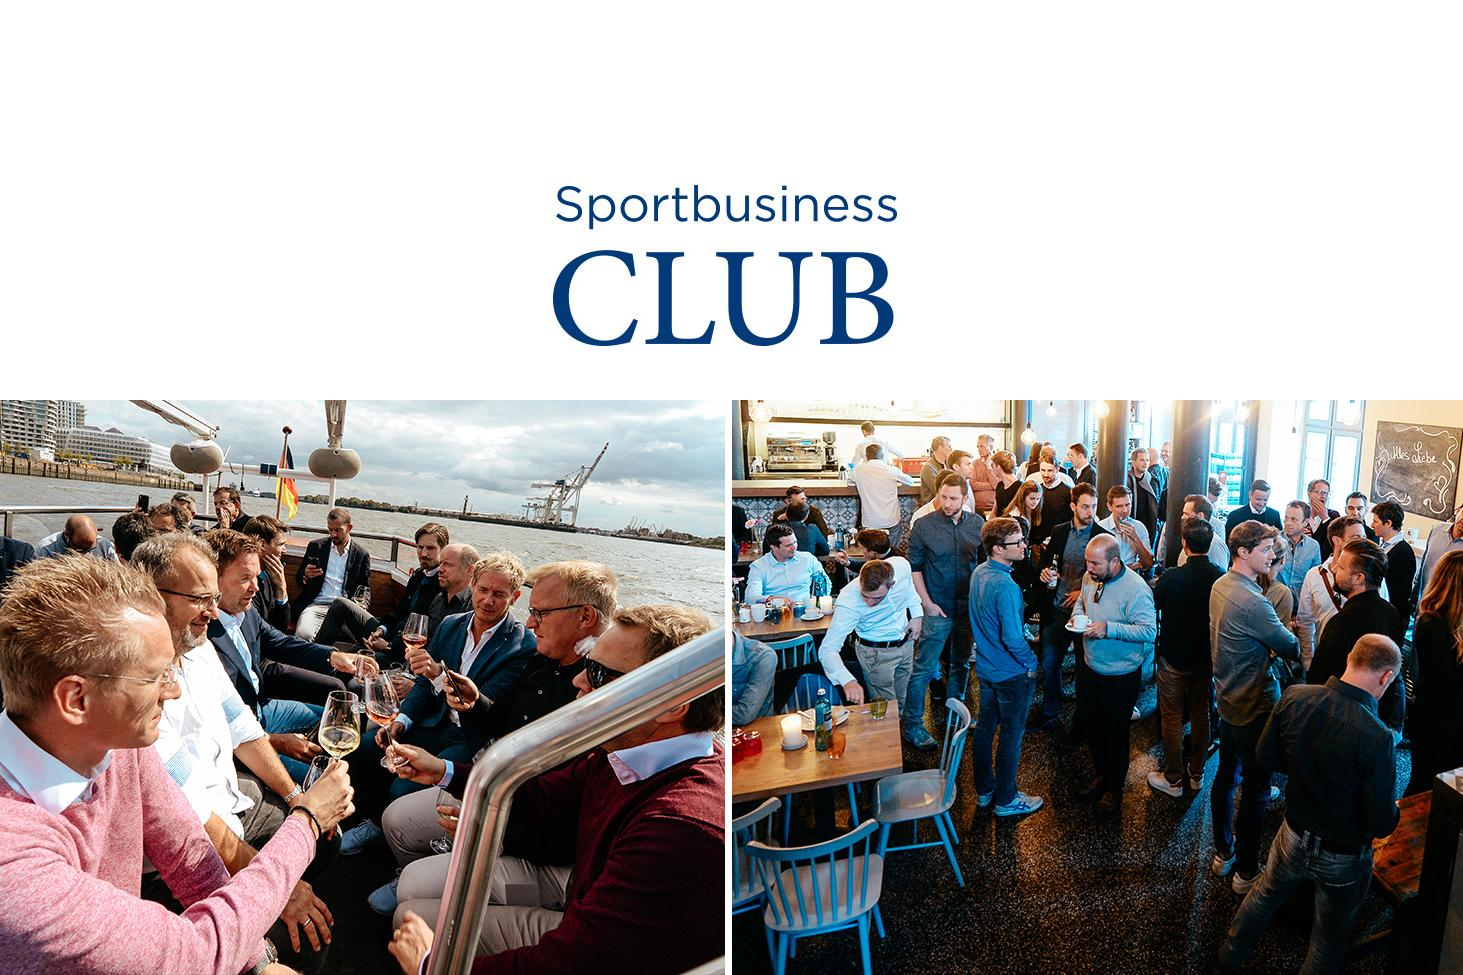 Sportbusiness Club